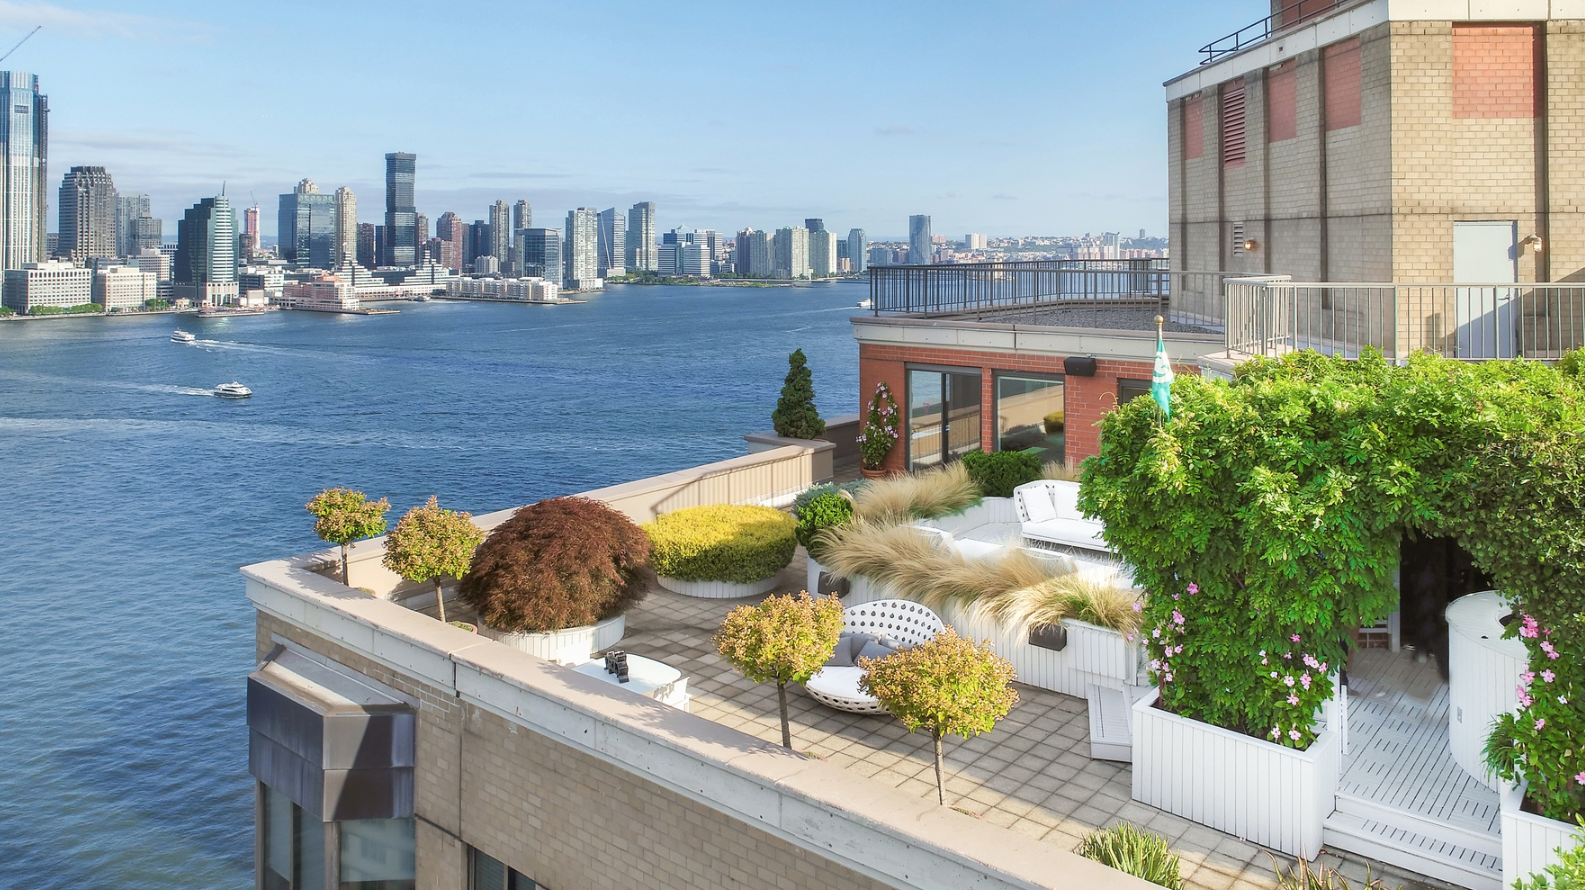 380 RECTOR PLACE, PHJ - $4,000,000 // 2 Beds // 2.5 Baths // 2,199 SQFT // 2,400 EXT SQFTA sublime duplex penthouse boasting a 2,400 sq. ft. terrace and protected panoramic views of the Hudson River, the Upper Bay, and the Statue of Liberty. Features of this home include elegant marble tile flooring, huge picture windows with northern, southern, and western exposure, and a wraparound terrace with built-in planters, a raised sundeck, and a hot tub Jacuzzi.